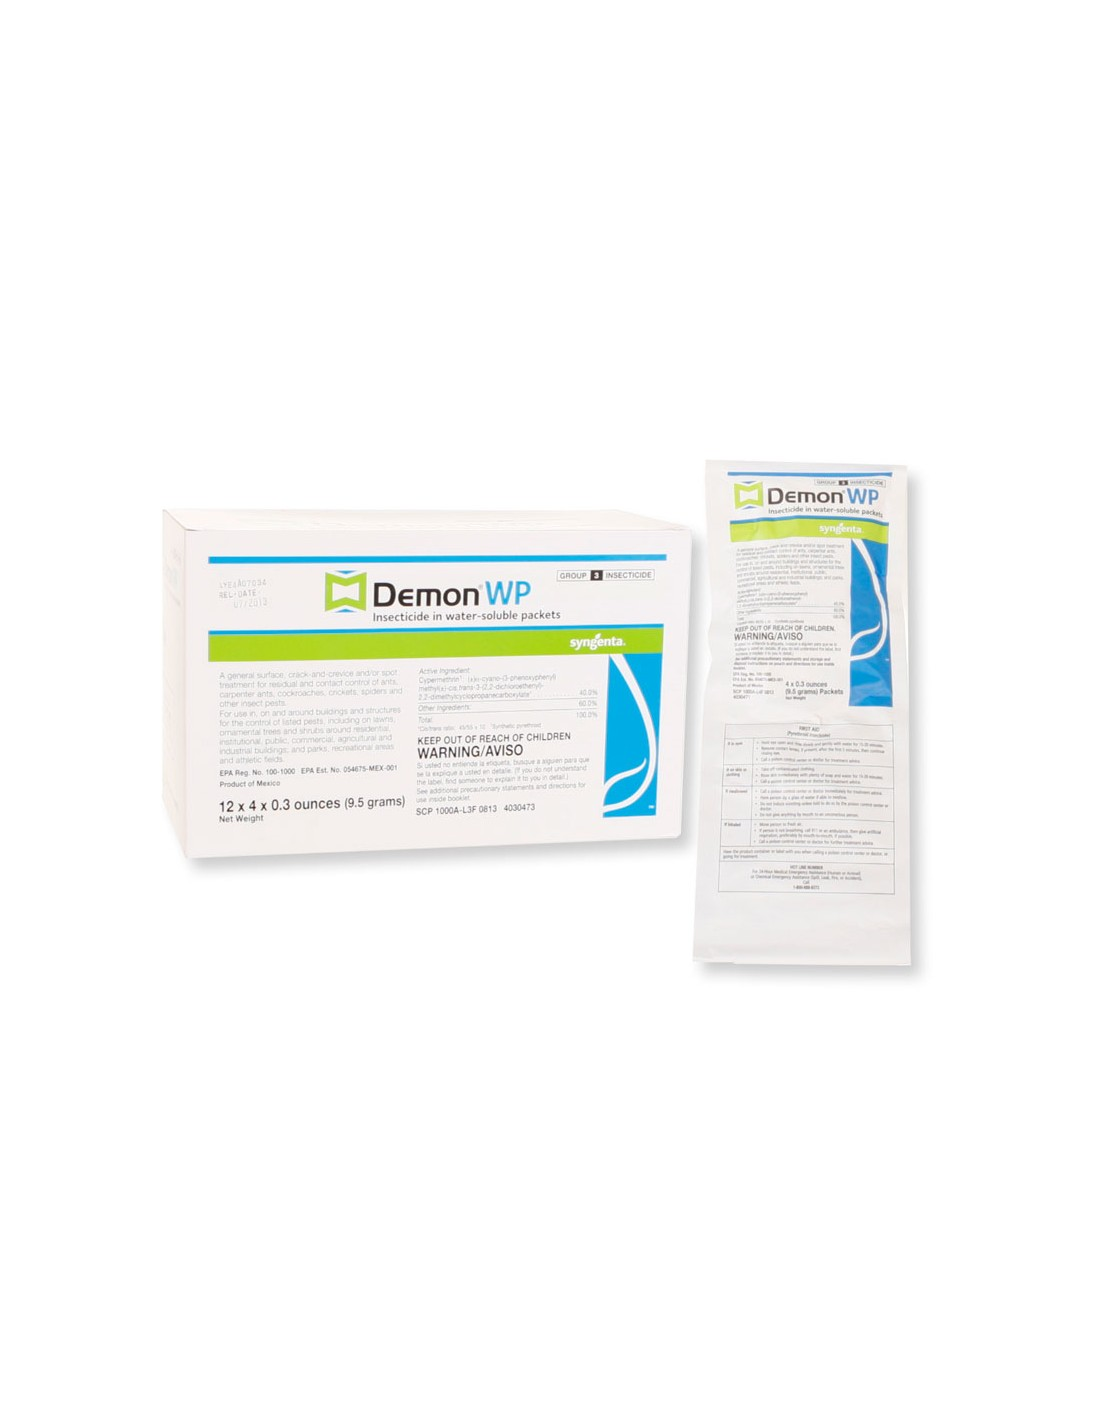 After Demon WP has been sprayed and dried inside the home, is it harmful to small pets if they lick where applied?